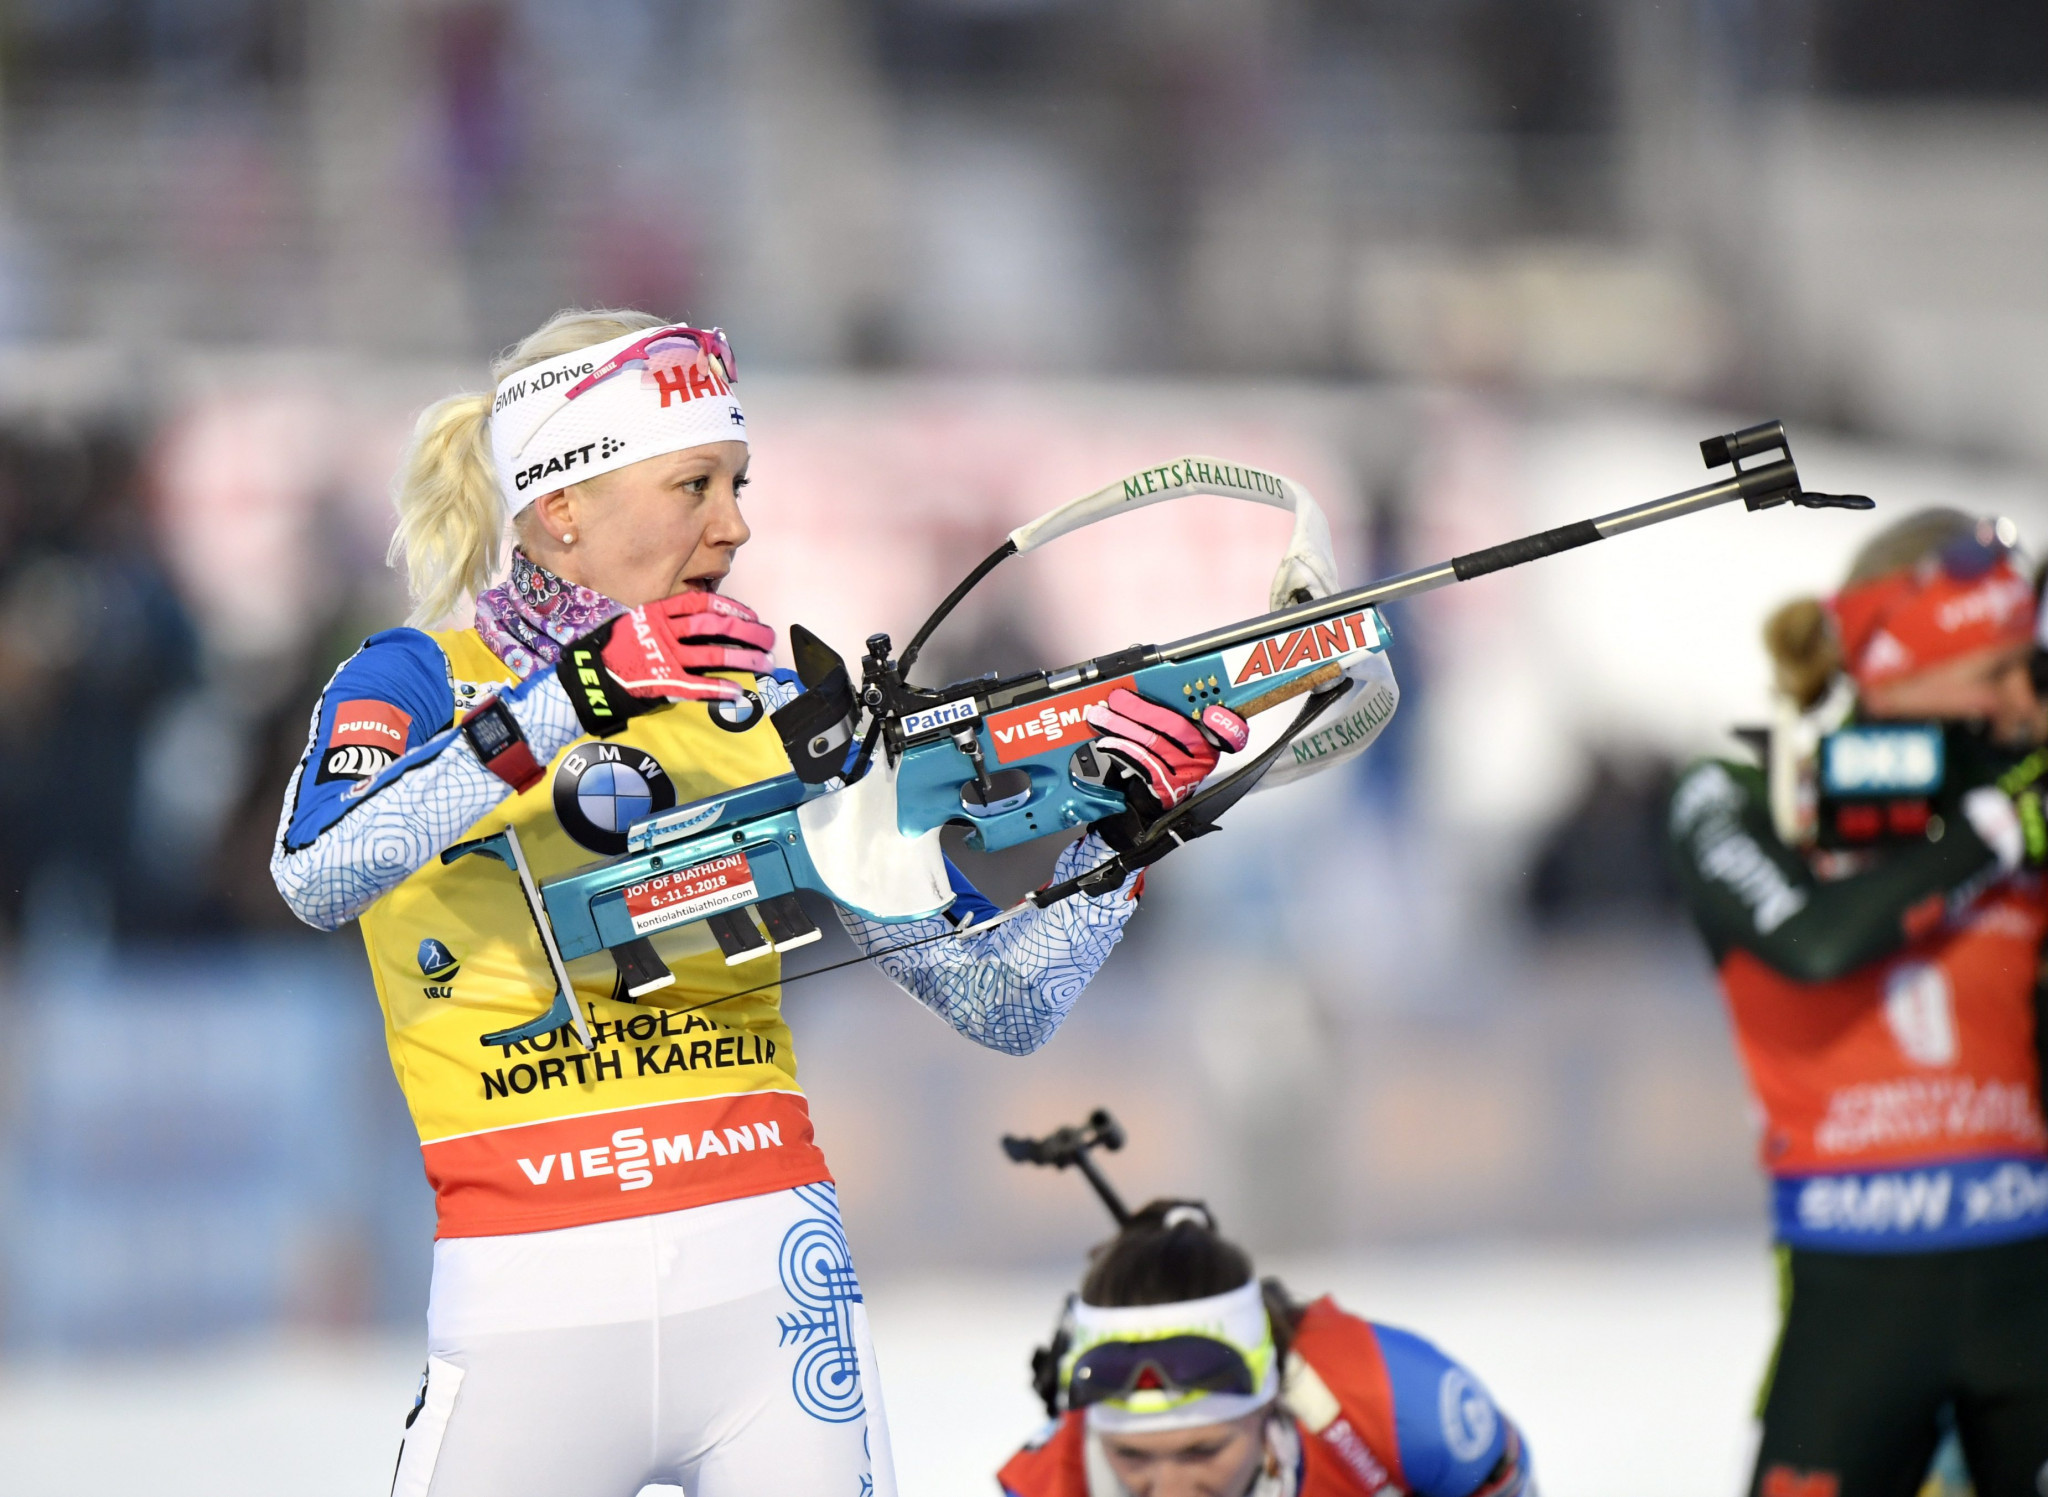 Makarainen reclaims IBU World Cup lead with one race to go as women's season heads for grandstand finish